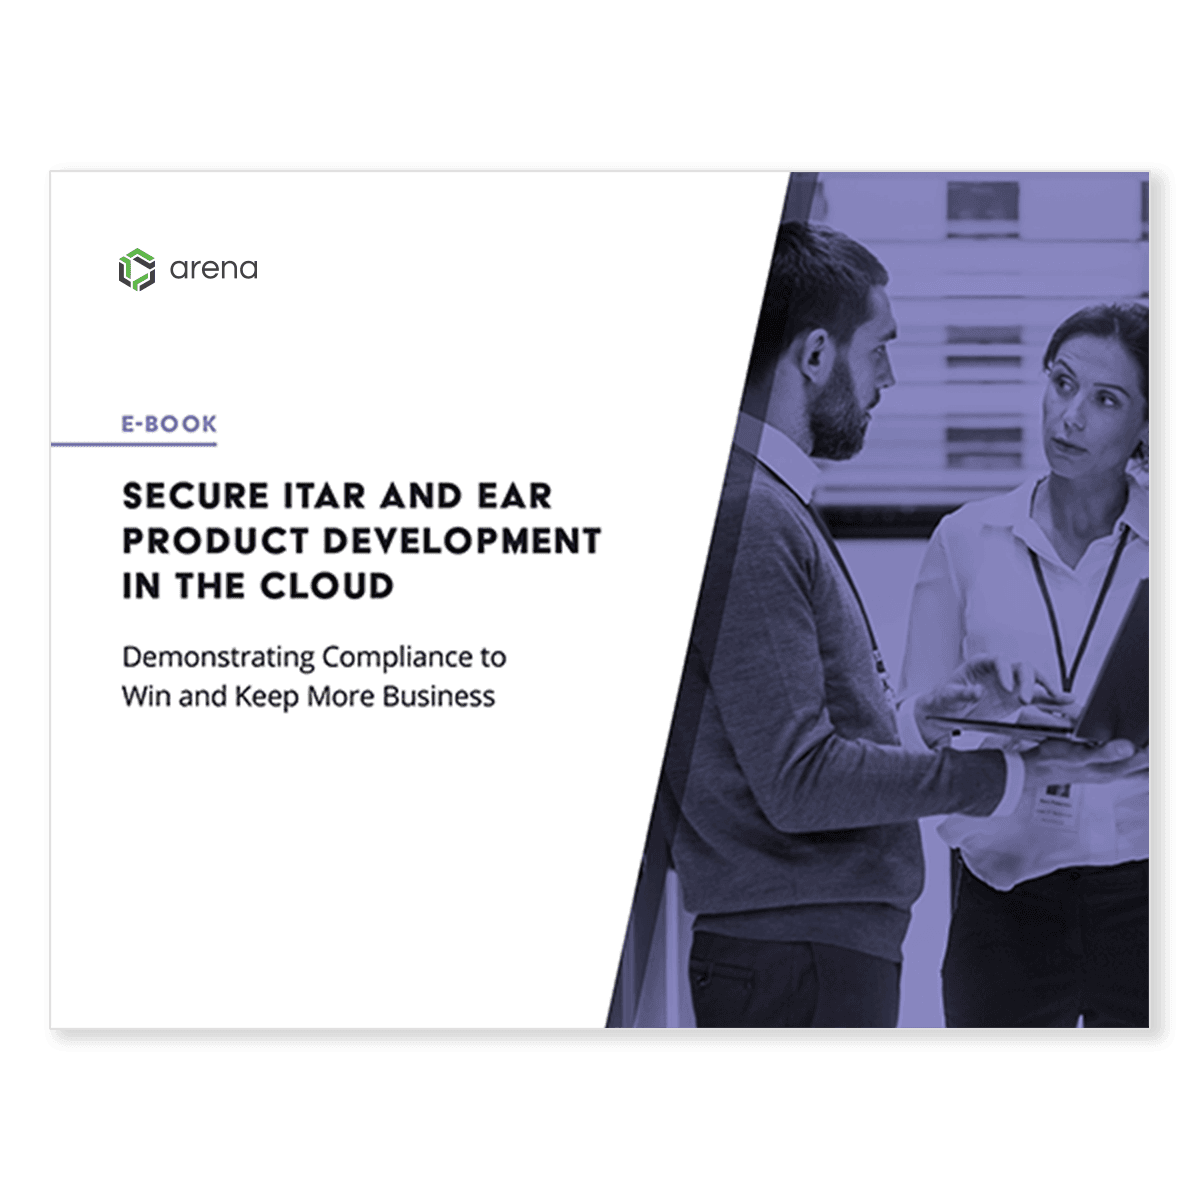 Secure ITAR and EAR Product Development in the Cloud